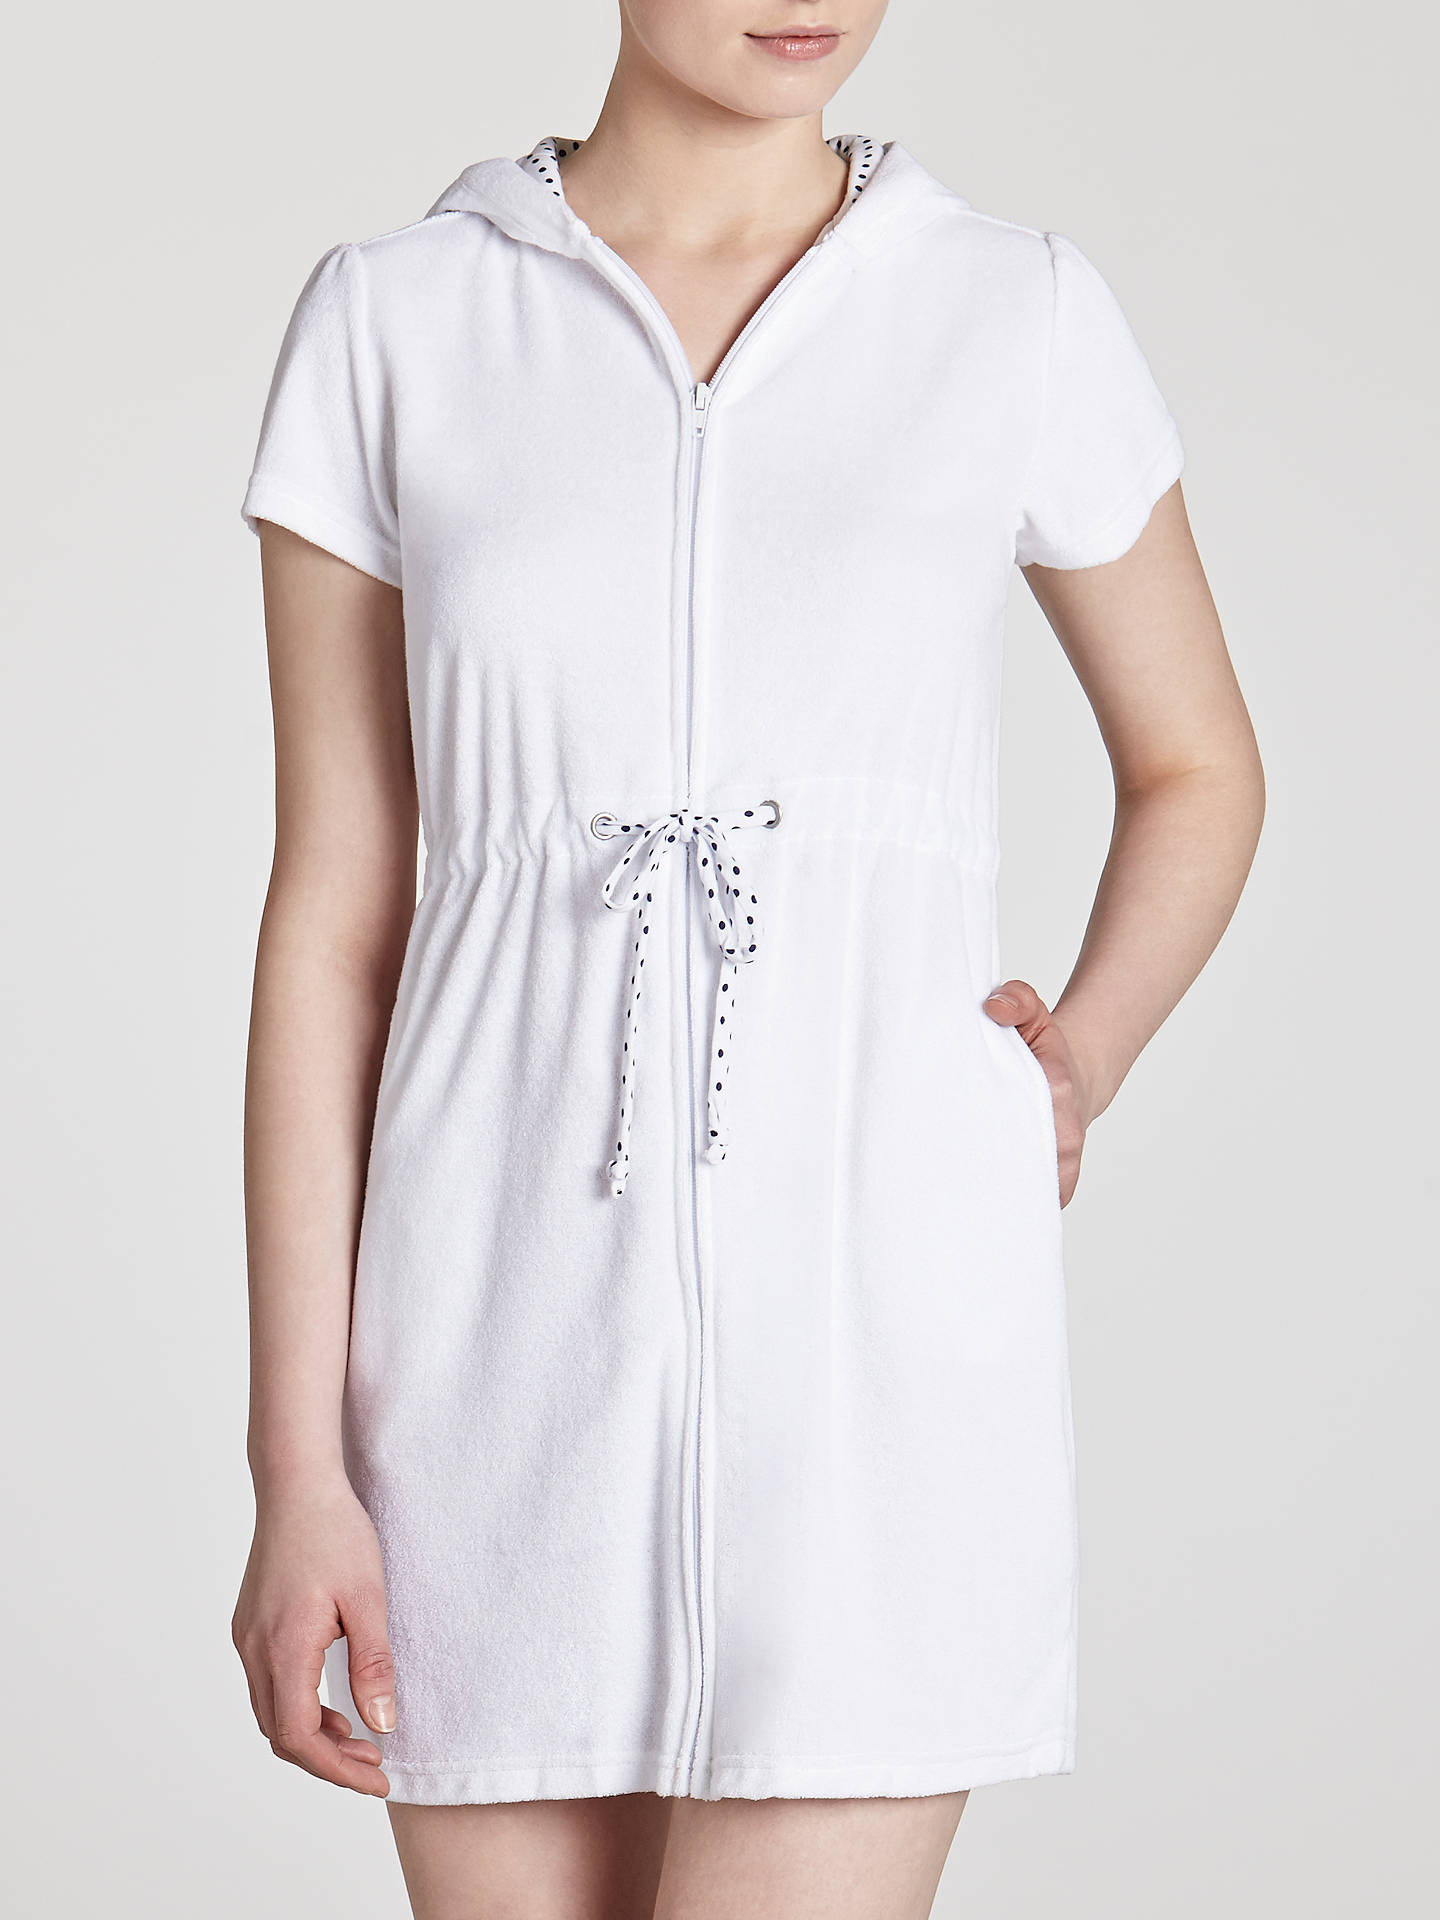 John Lewis Zip Toweling Cover Up Dress at John Lewis & Partners